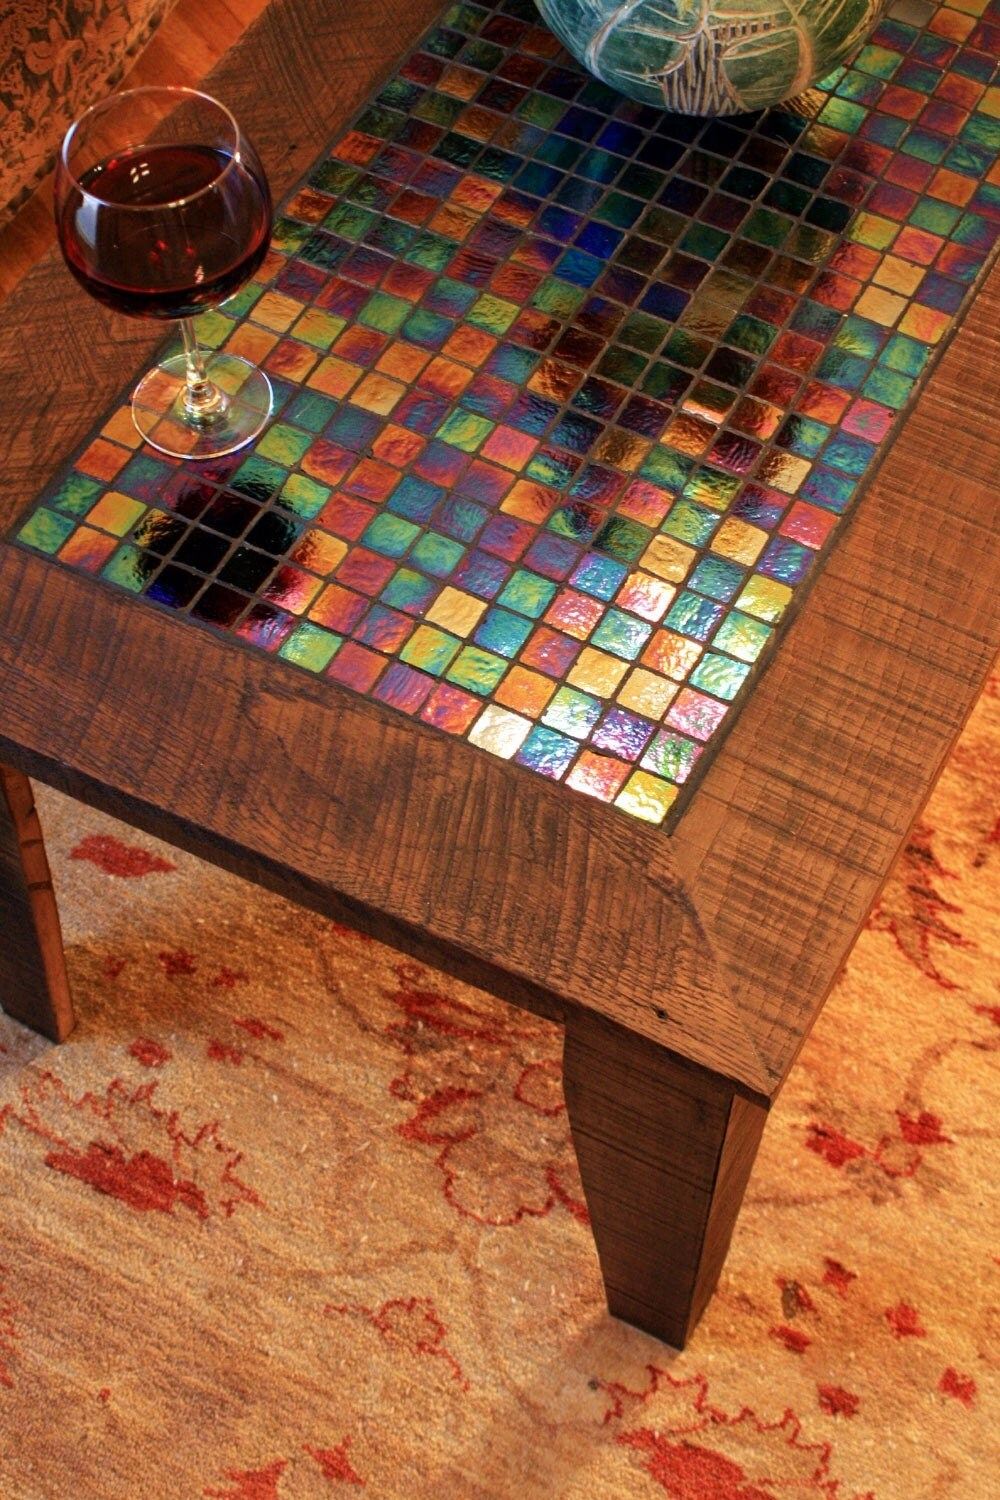 Java Coffee Table 625 Dollars Large Coffee Table With Irridescent Glass Tile